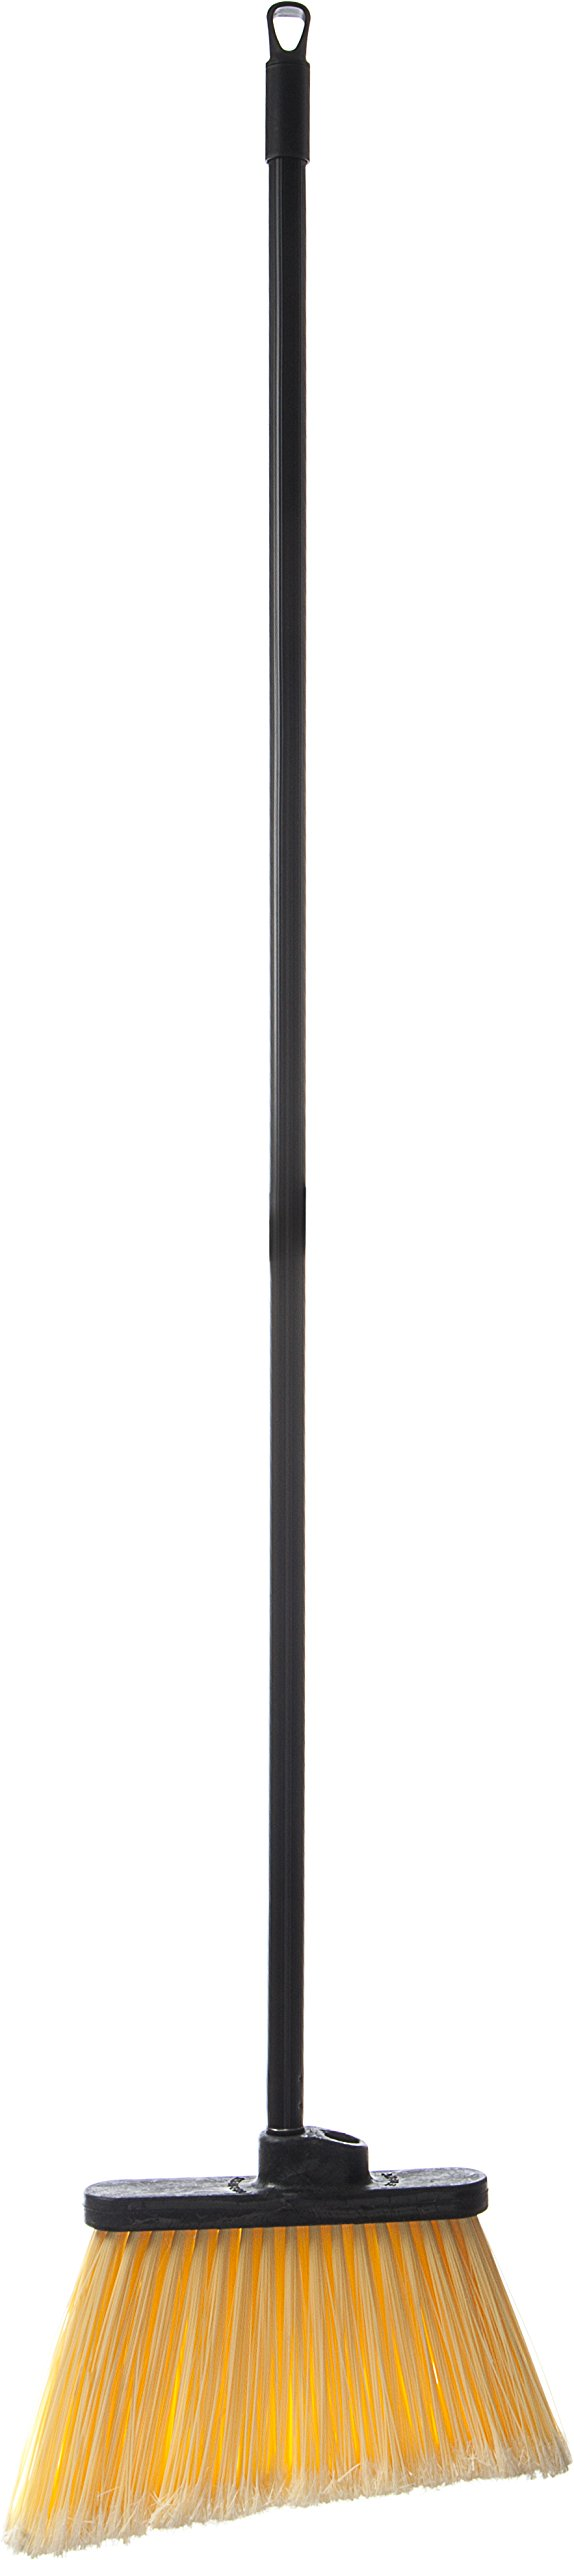 Carlisle 3686500 Duo-Sweep Flagged Angle Broom, 56'' Length by Carlisle (Image #8)